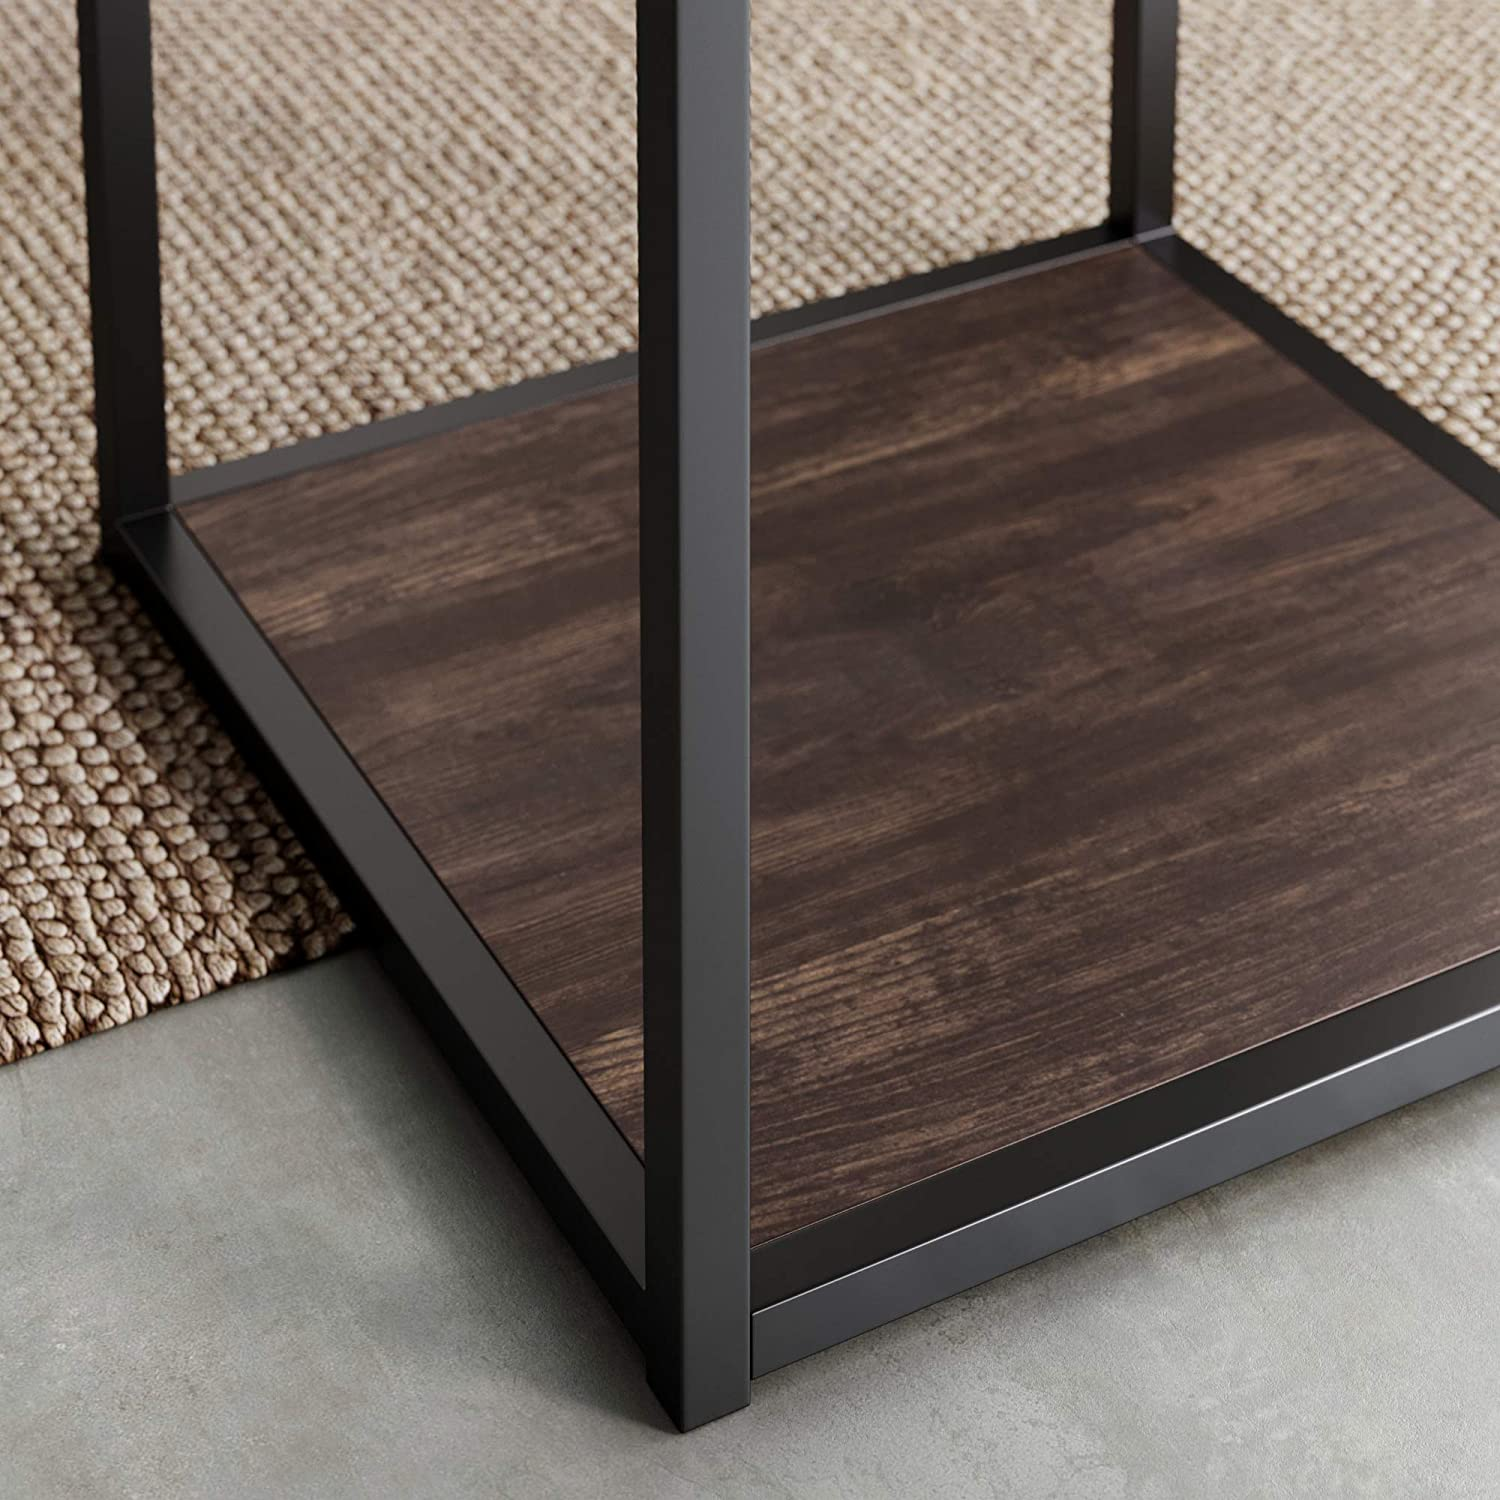 Nathan James Nash Modern Industrial Accent End or Side Table with Tray Top Wood Shelves & Durable Matte Metal Frame, Nutmeg